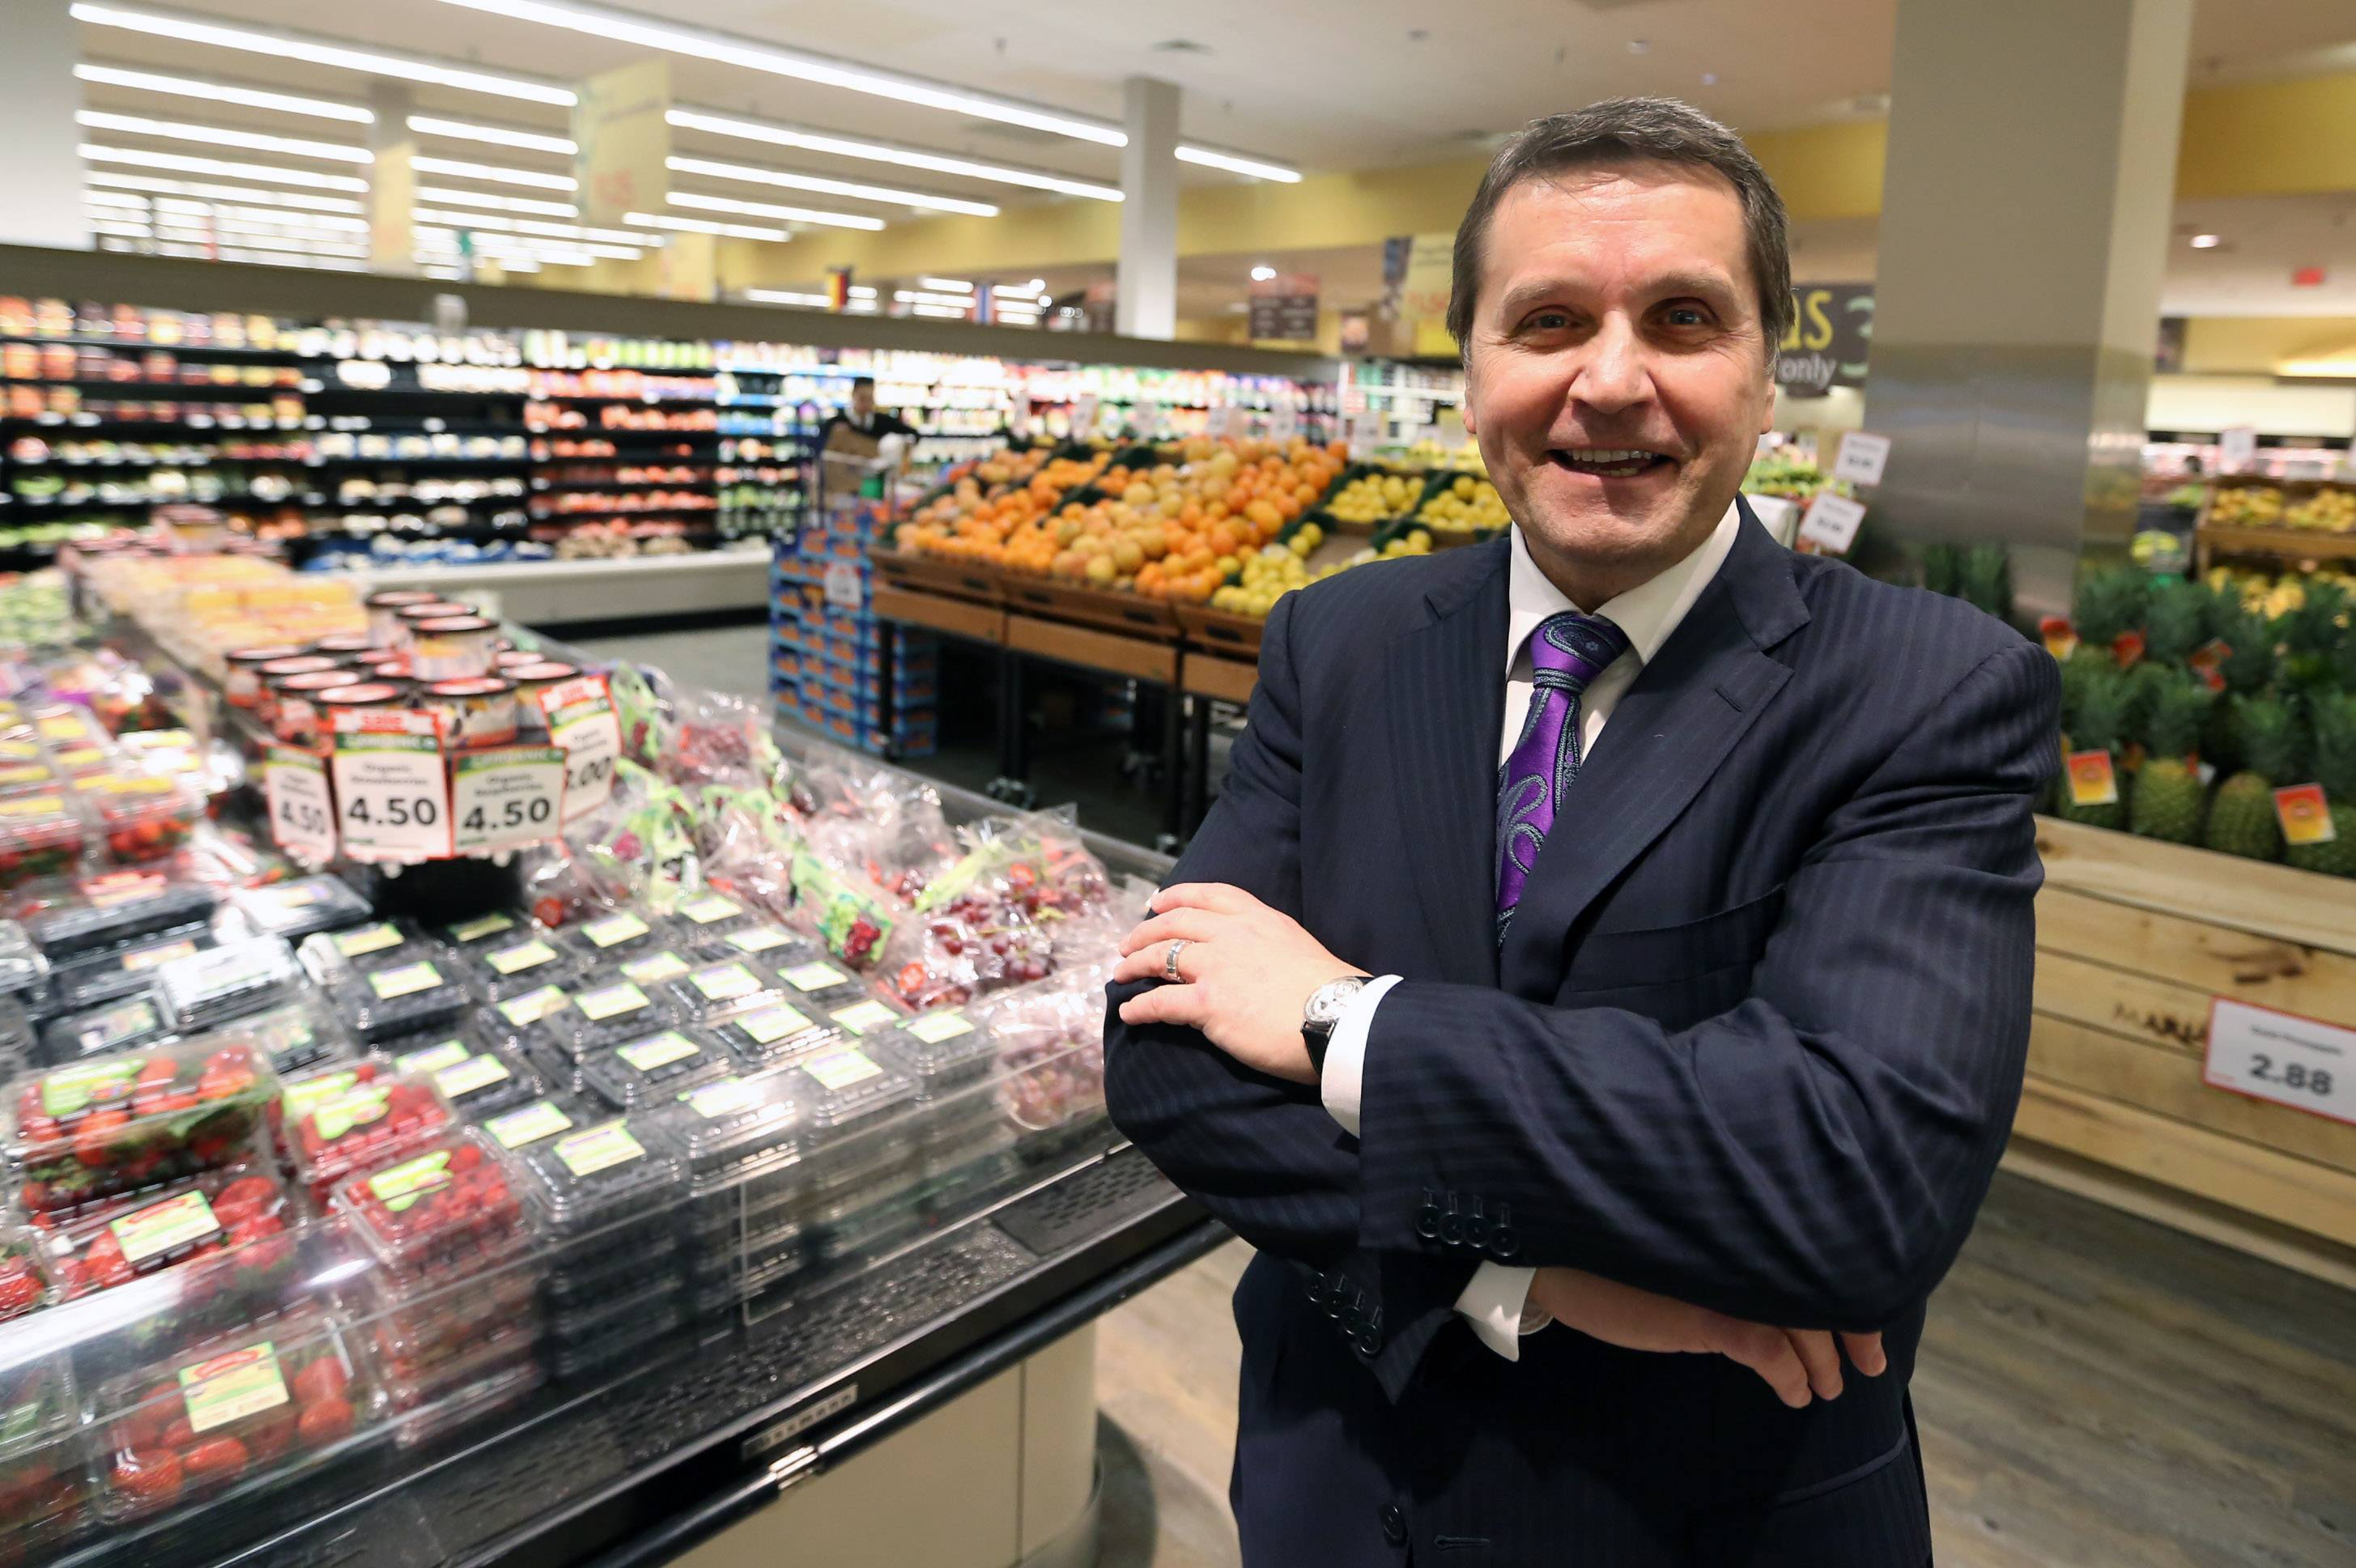 Mariano's grocery store CEO Bob Mariano to retire in September